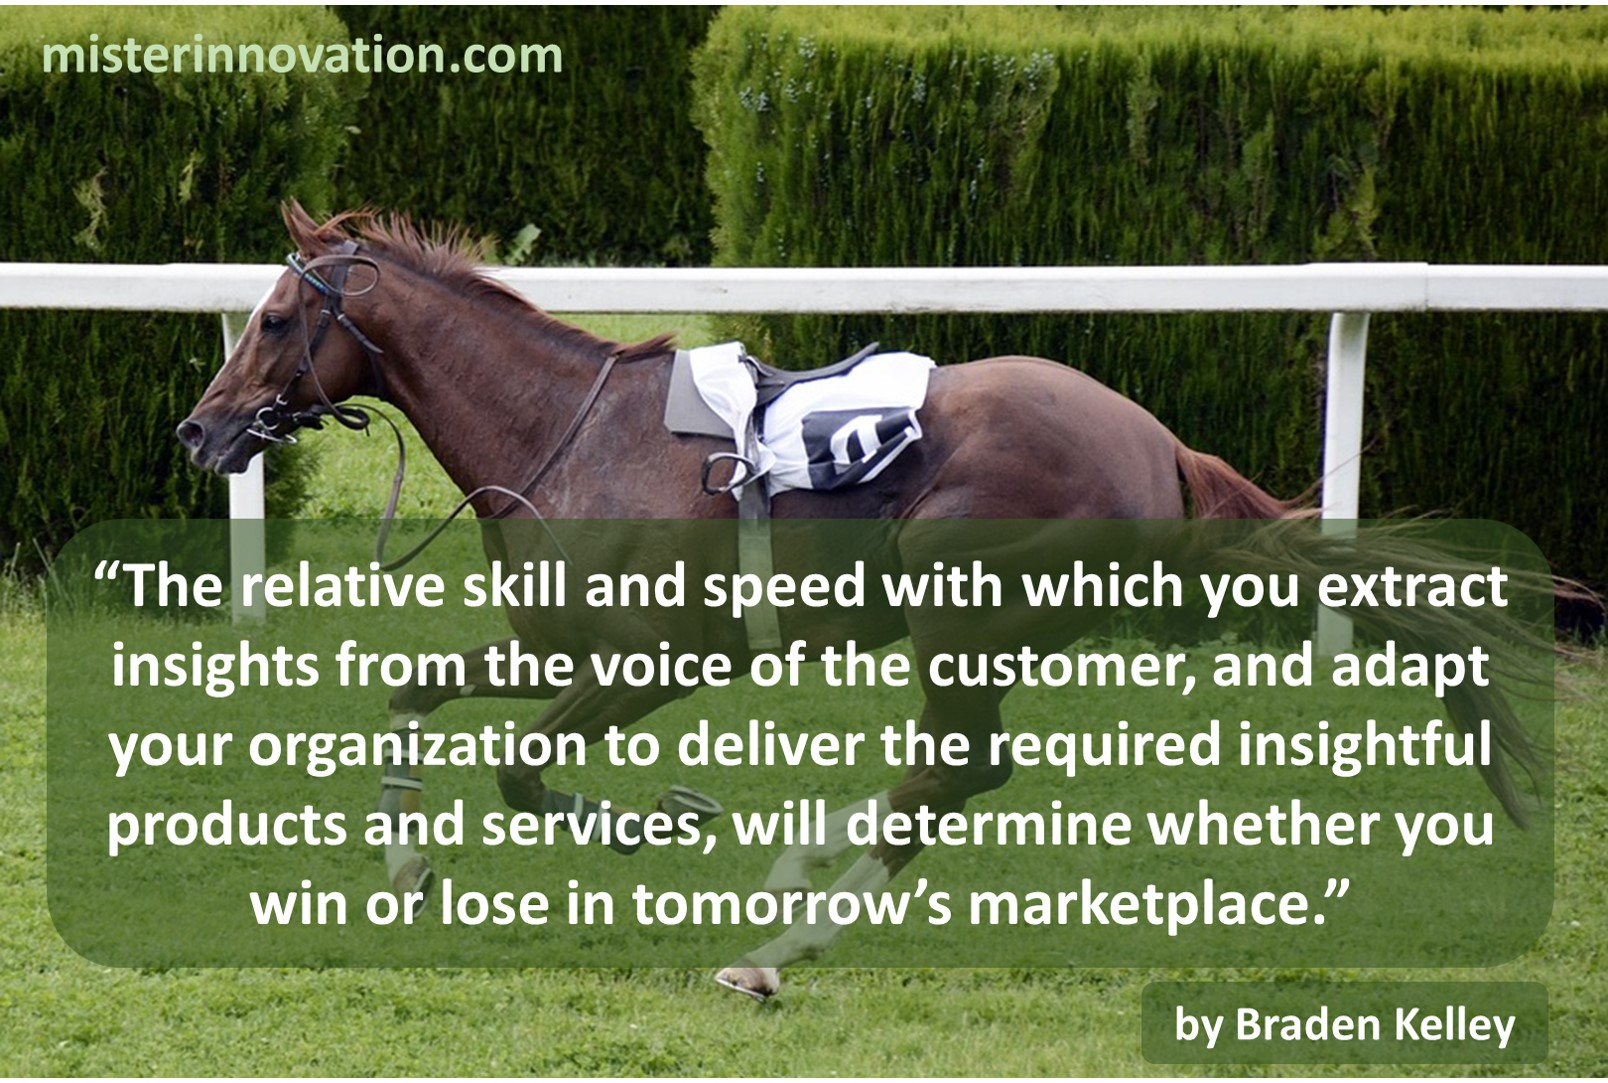 Skill and Speed of Insight Transformation Quote from Braden Kelley